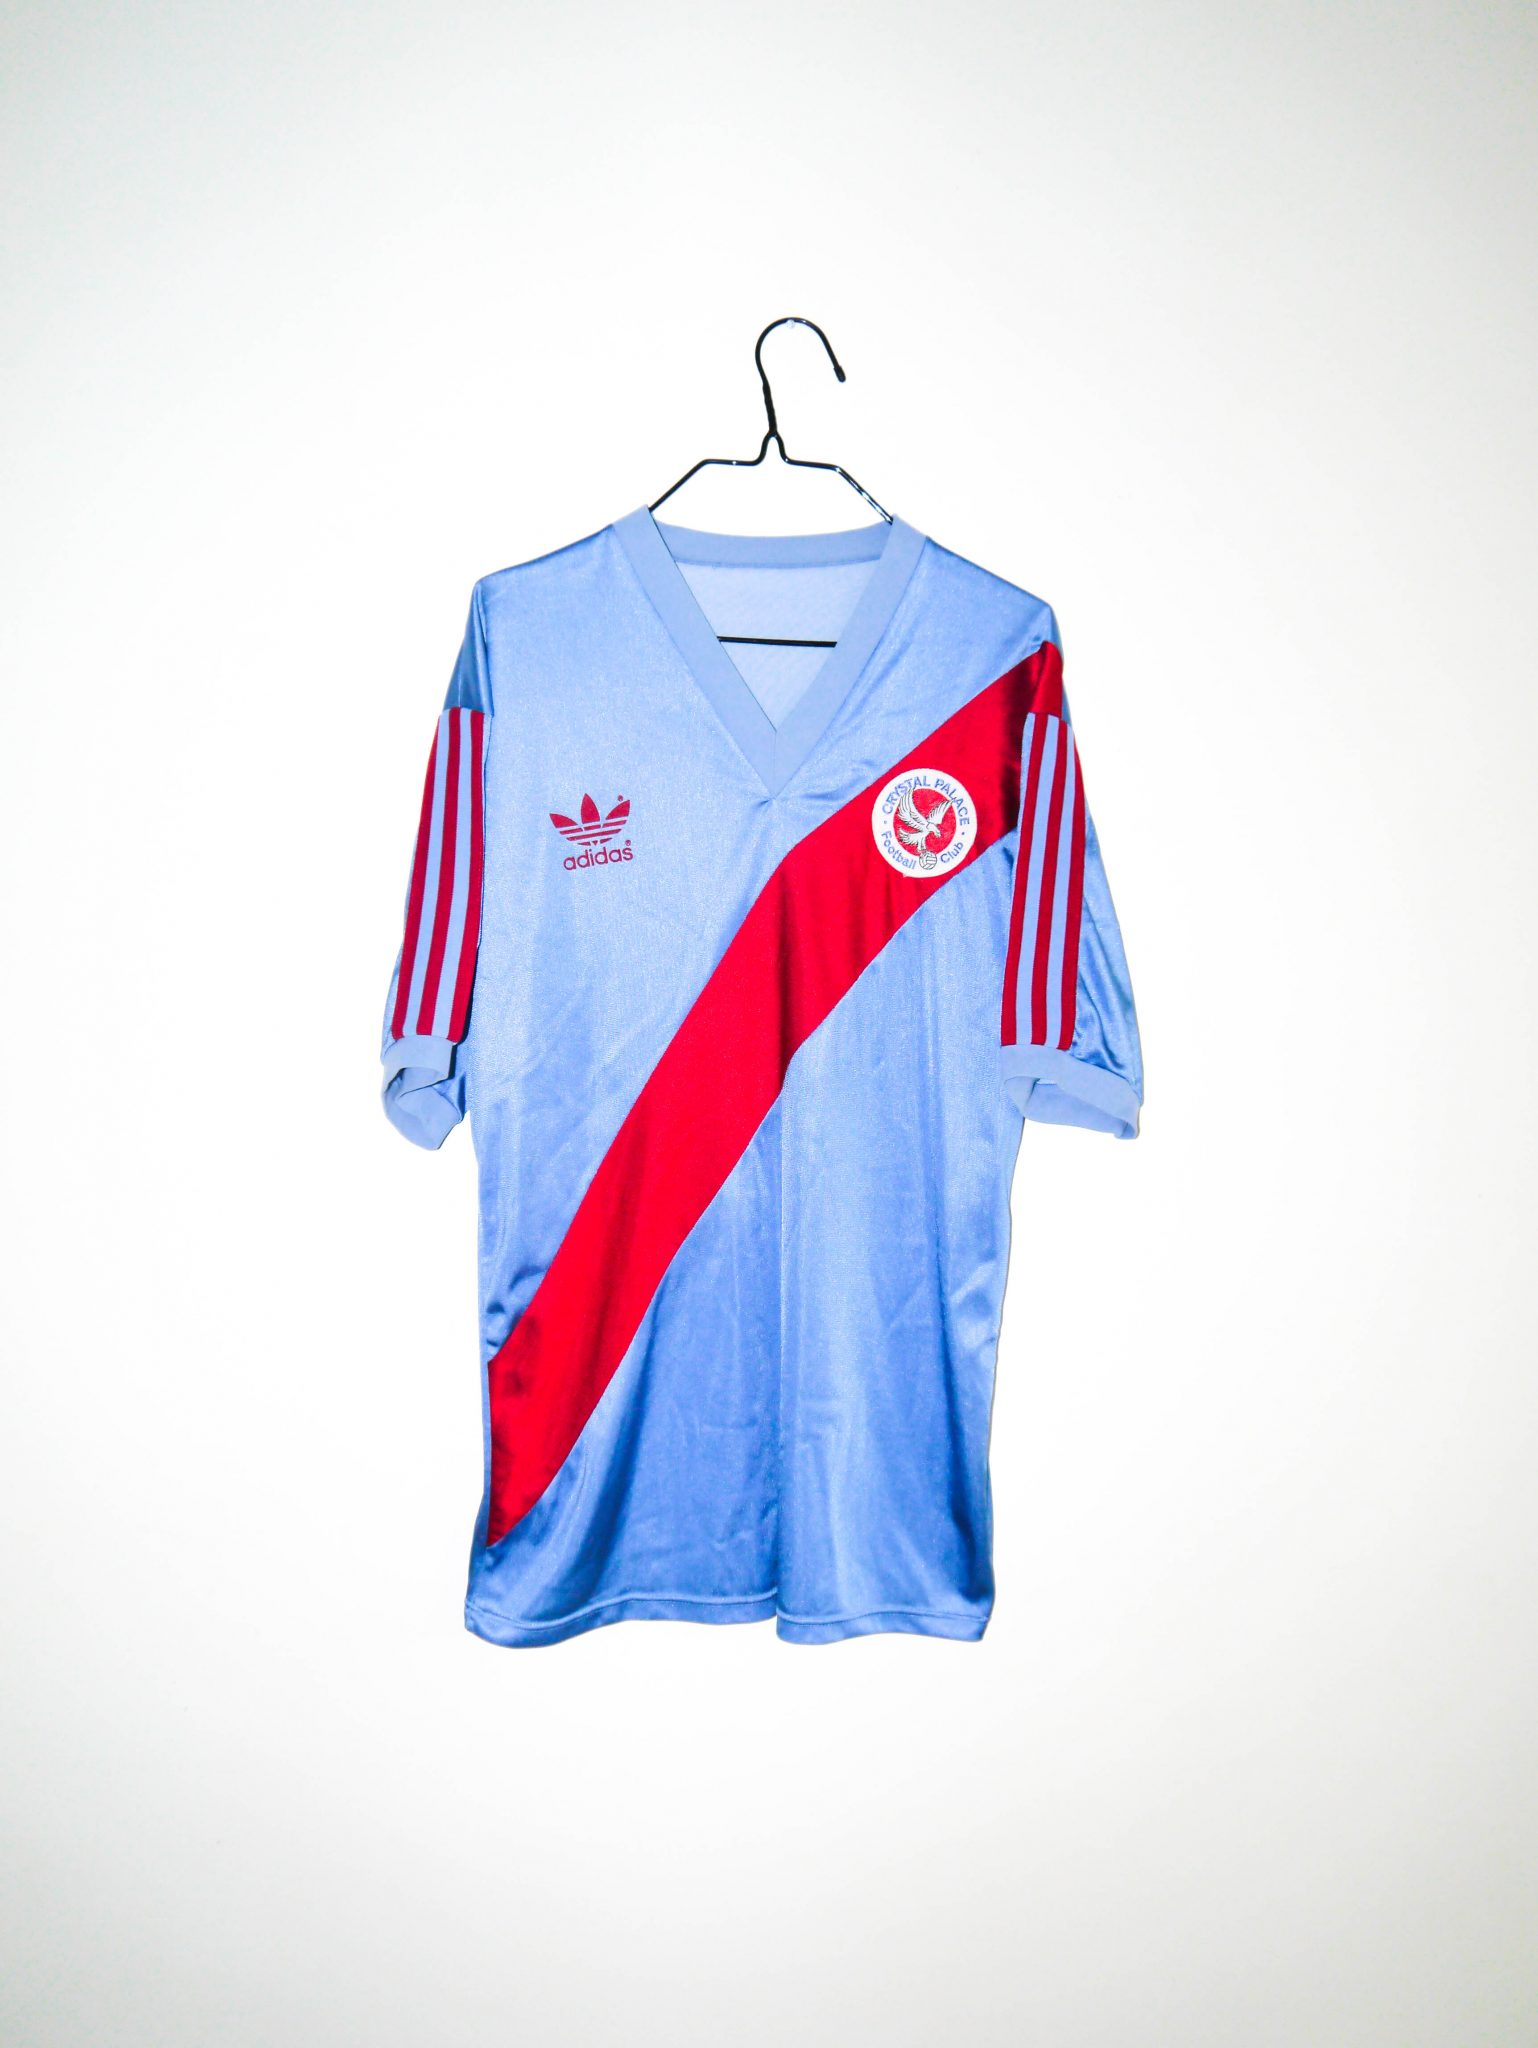 240f60261 Home / Shop / English Clubs / Crystal Palace / Original 1980-93 Crystal  Palace away jersey – M